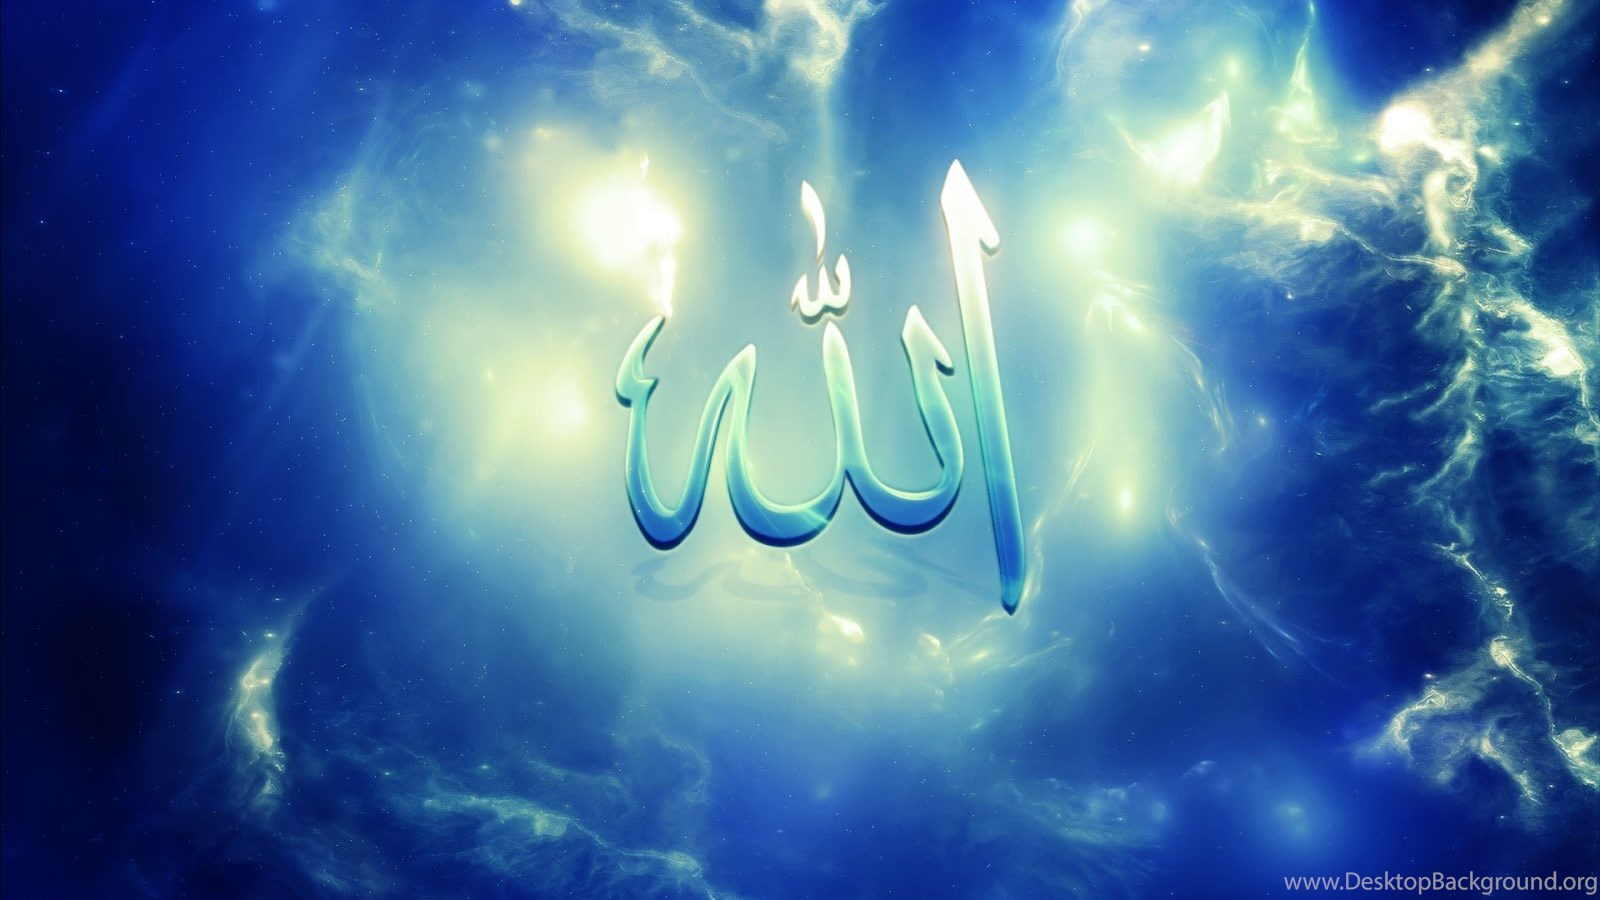 Hd Wallpapers Fayaz Alli Naming: ALLAH Names Wallpapers HD Pictures Desktop Background